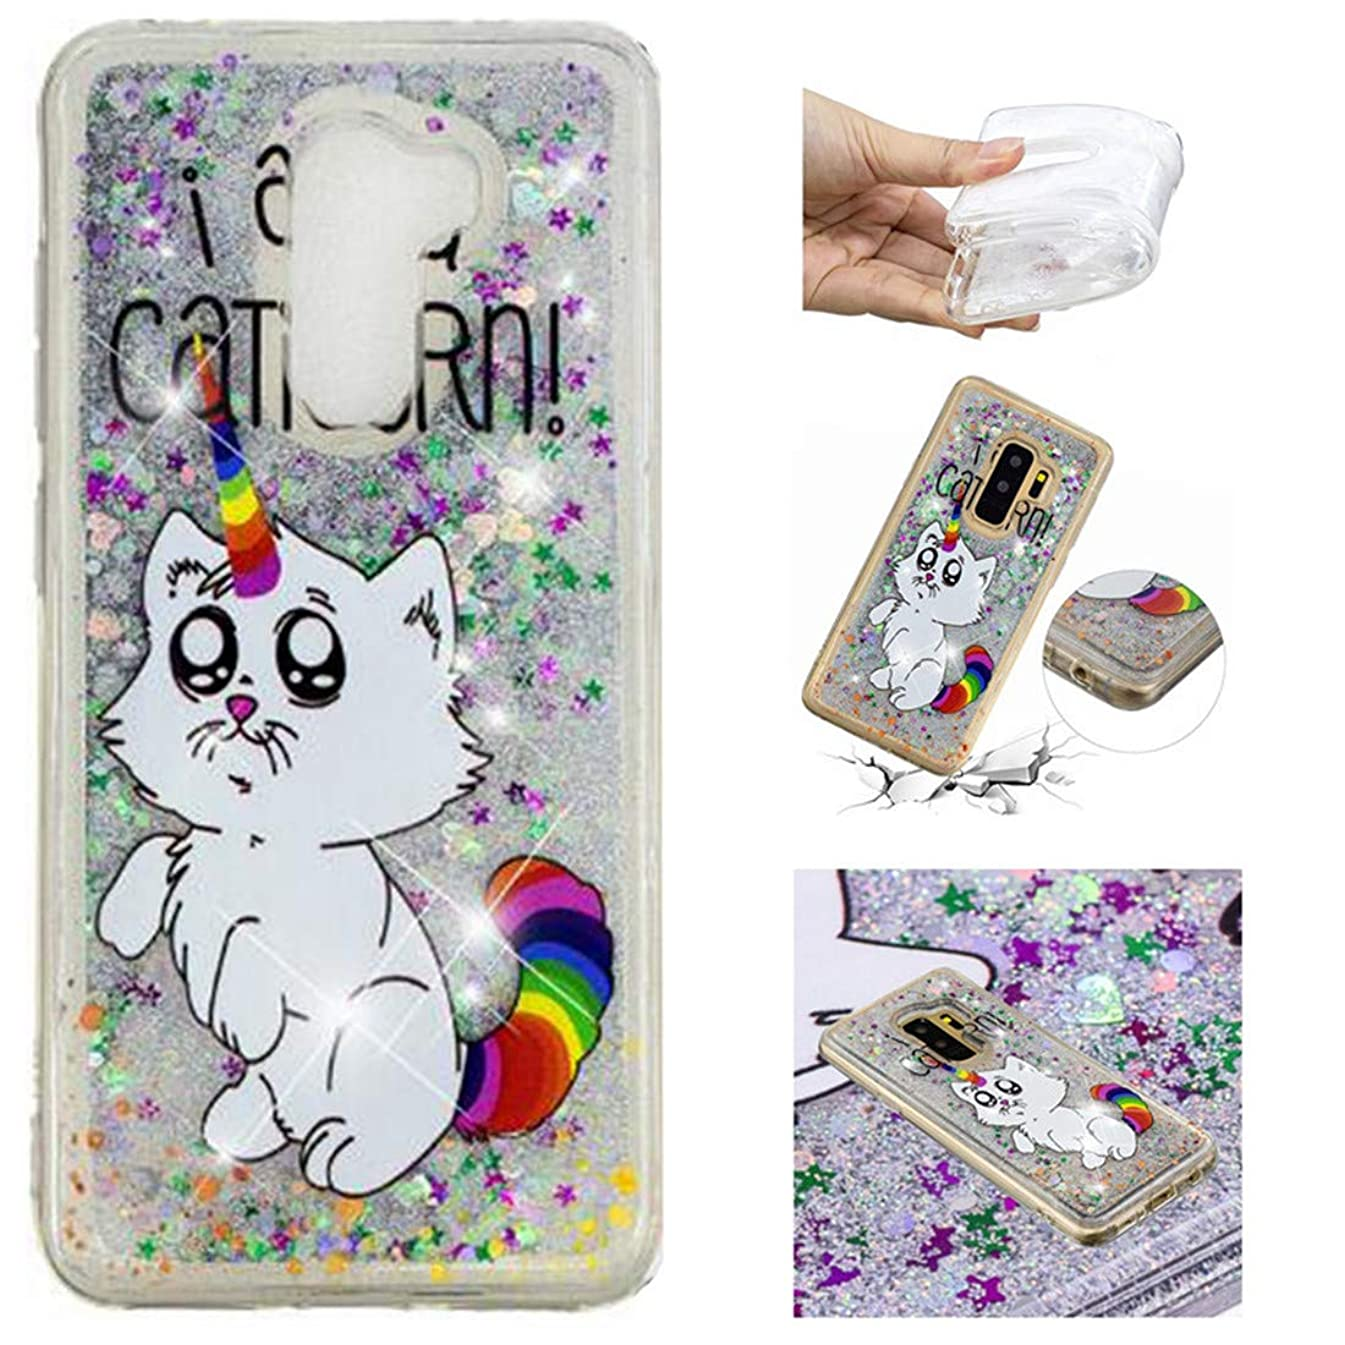 Galaxy S9 Plus Case, Lwaisy Flowing Liquid Floating Shock-Absorbing Anti-Scratch Flexible TPU Bumper Glitter Cover Phone Case for Samsung Galaxy S9 Plus (2018), Cat Unicorn